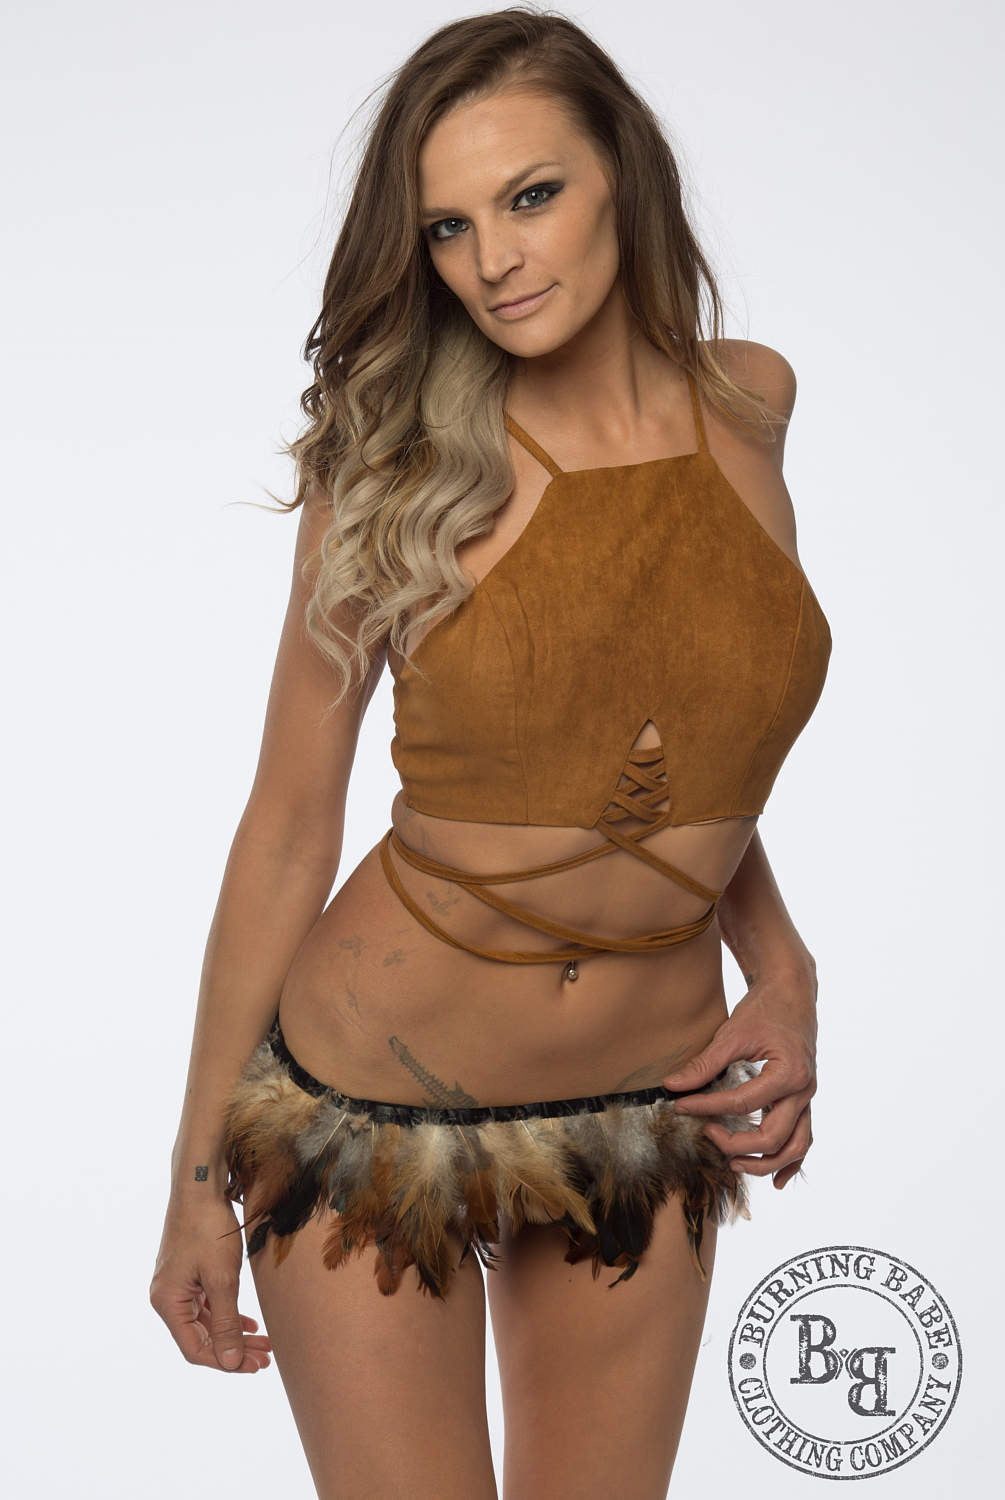 Feather Skirt - burningbabeclothingco